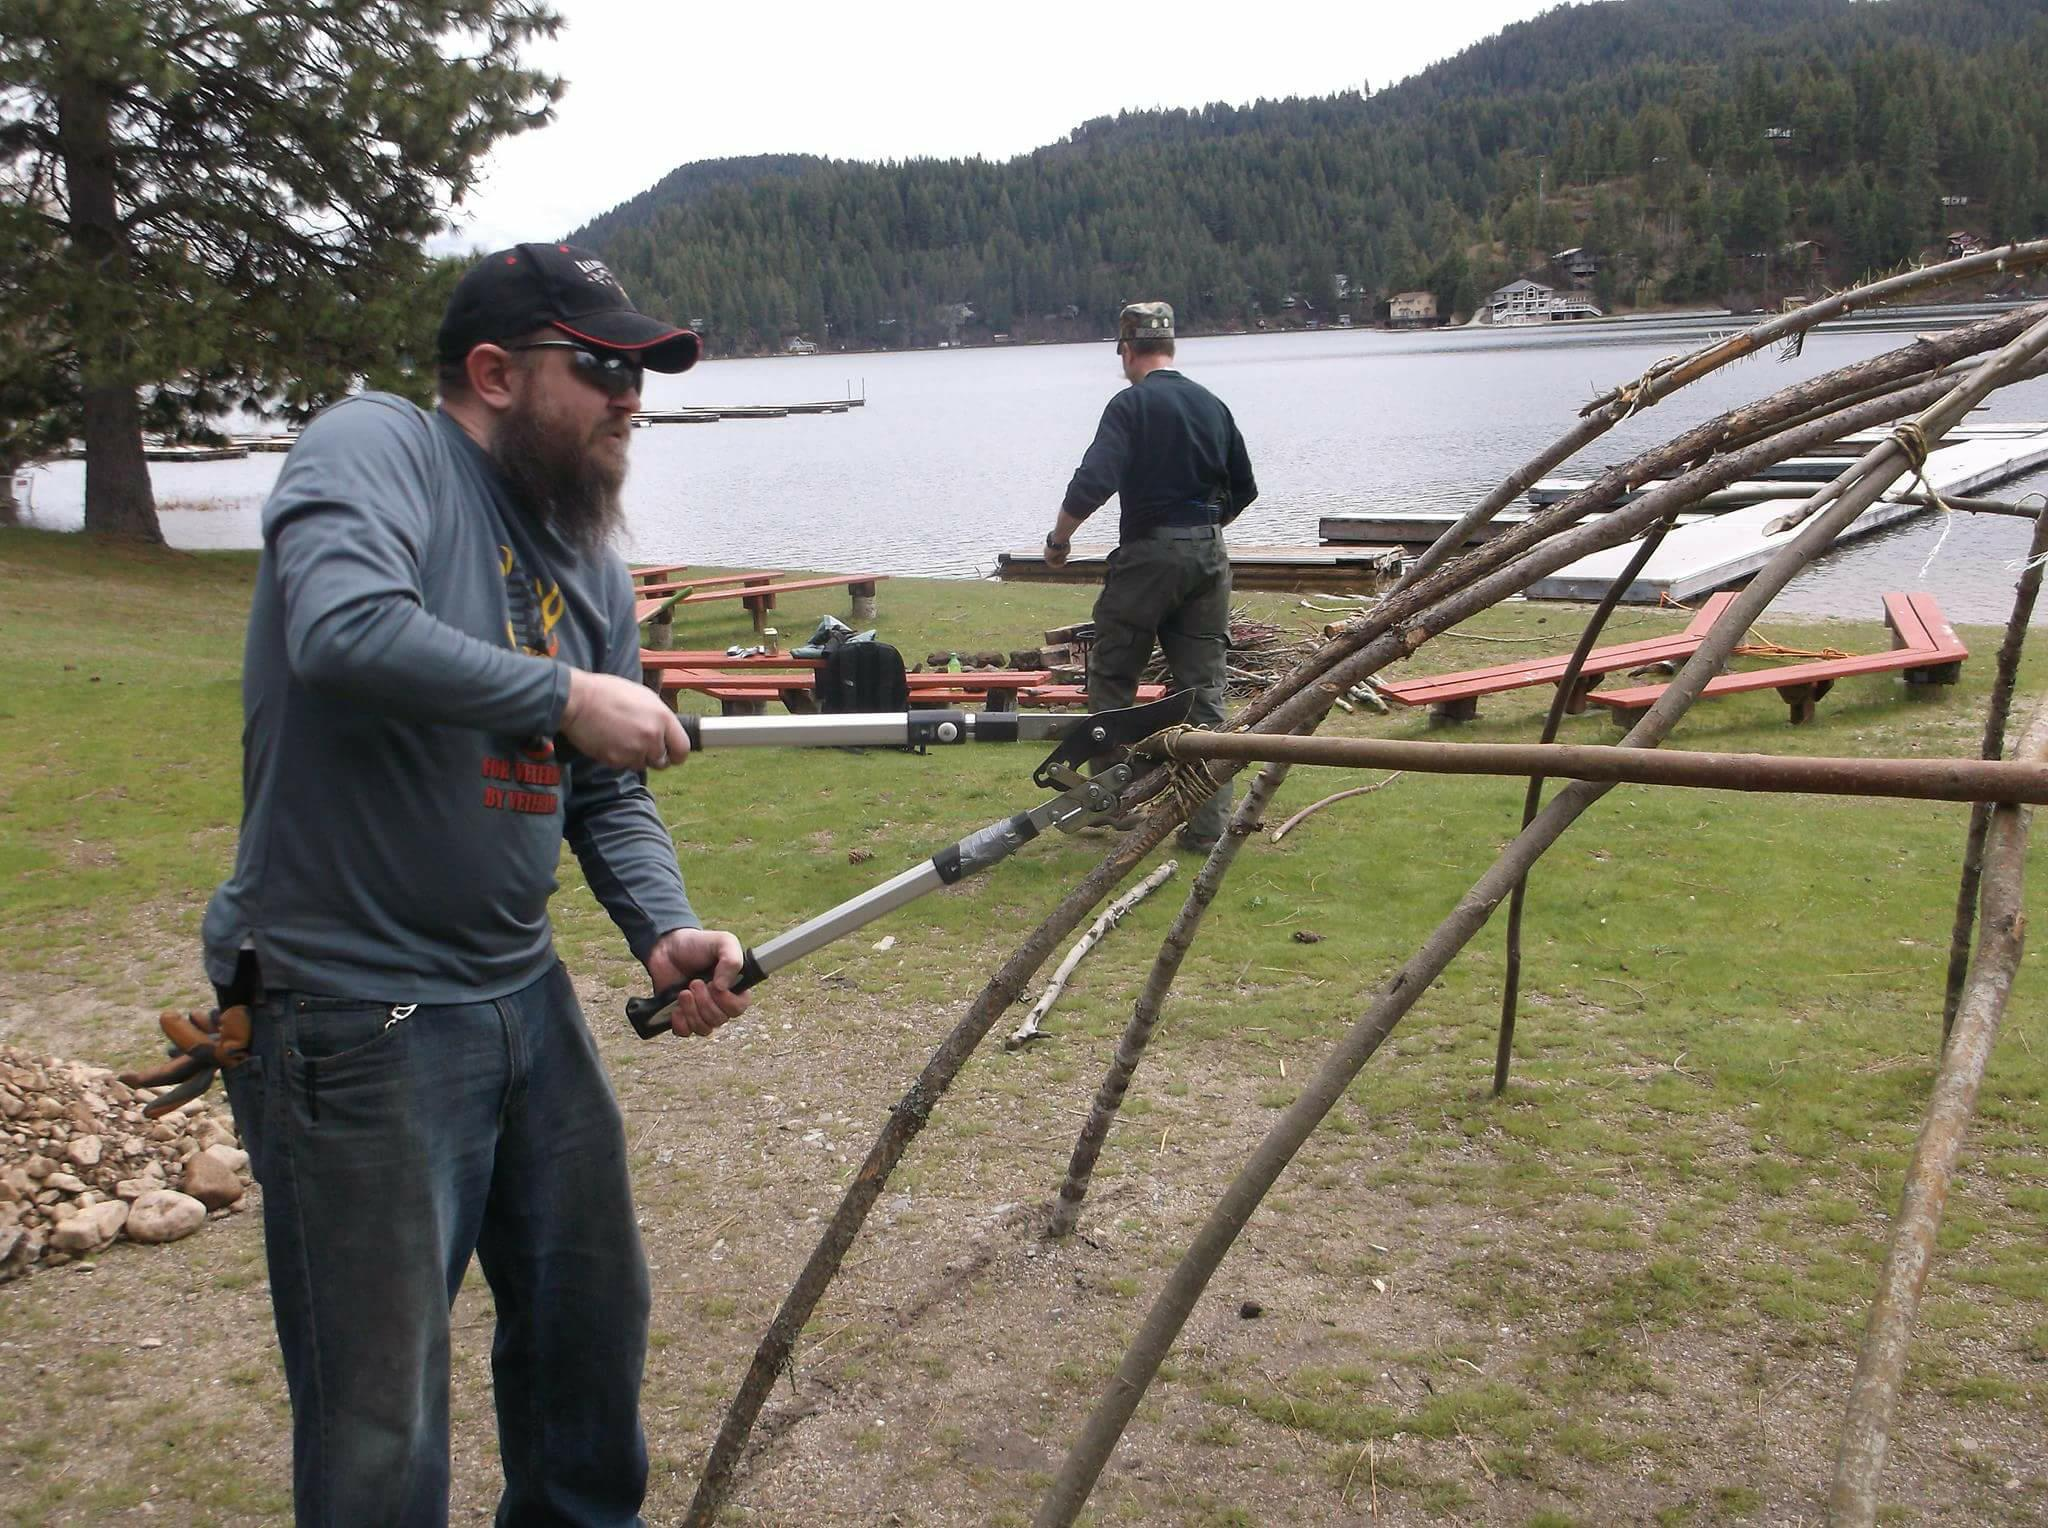 Iraq War veteran Michael Carroll, assisting in building the frame for a sweat lodge under the direction of Blackfeet Indian cultural advisors. Courtesy: Michael Carroll.